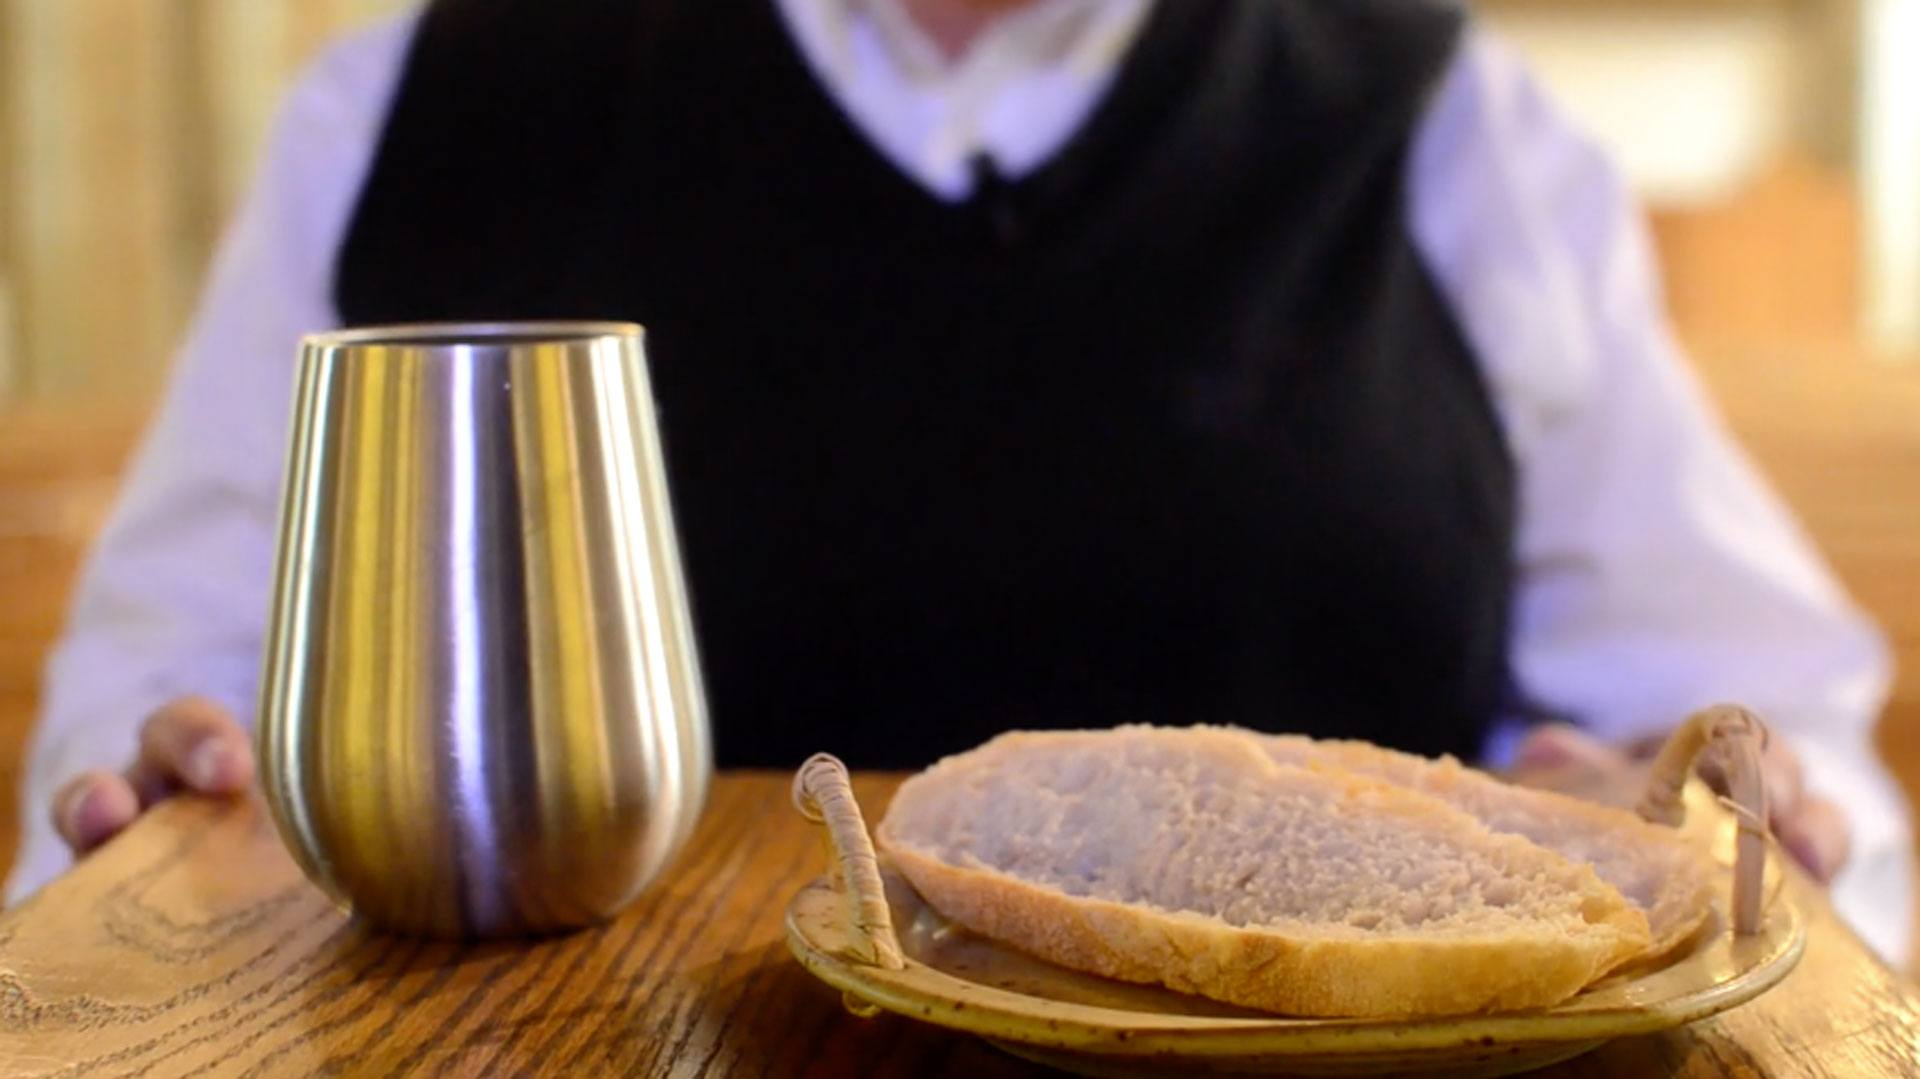 Photo of Terry Smith holding communion elements